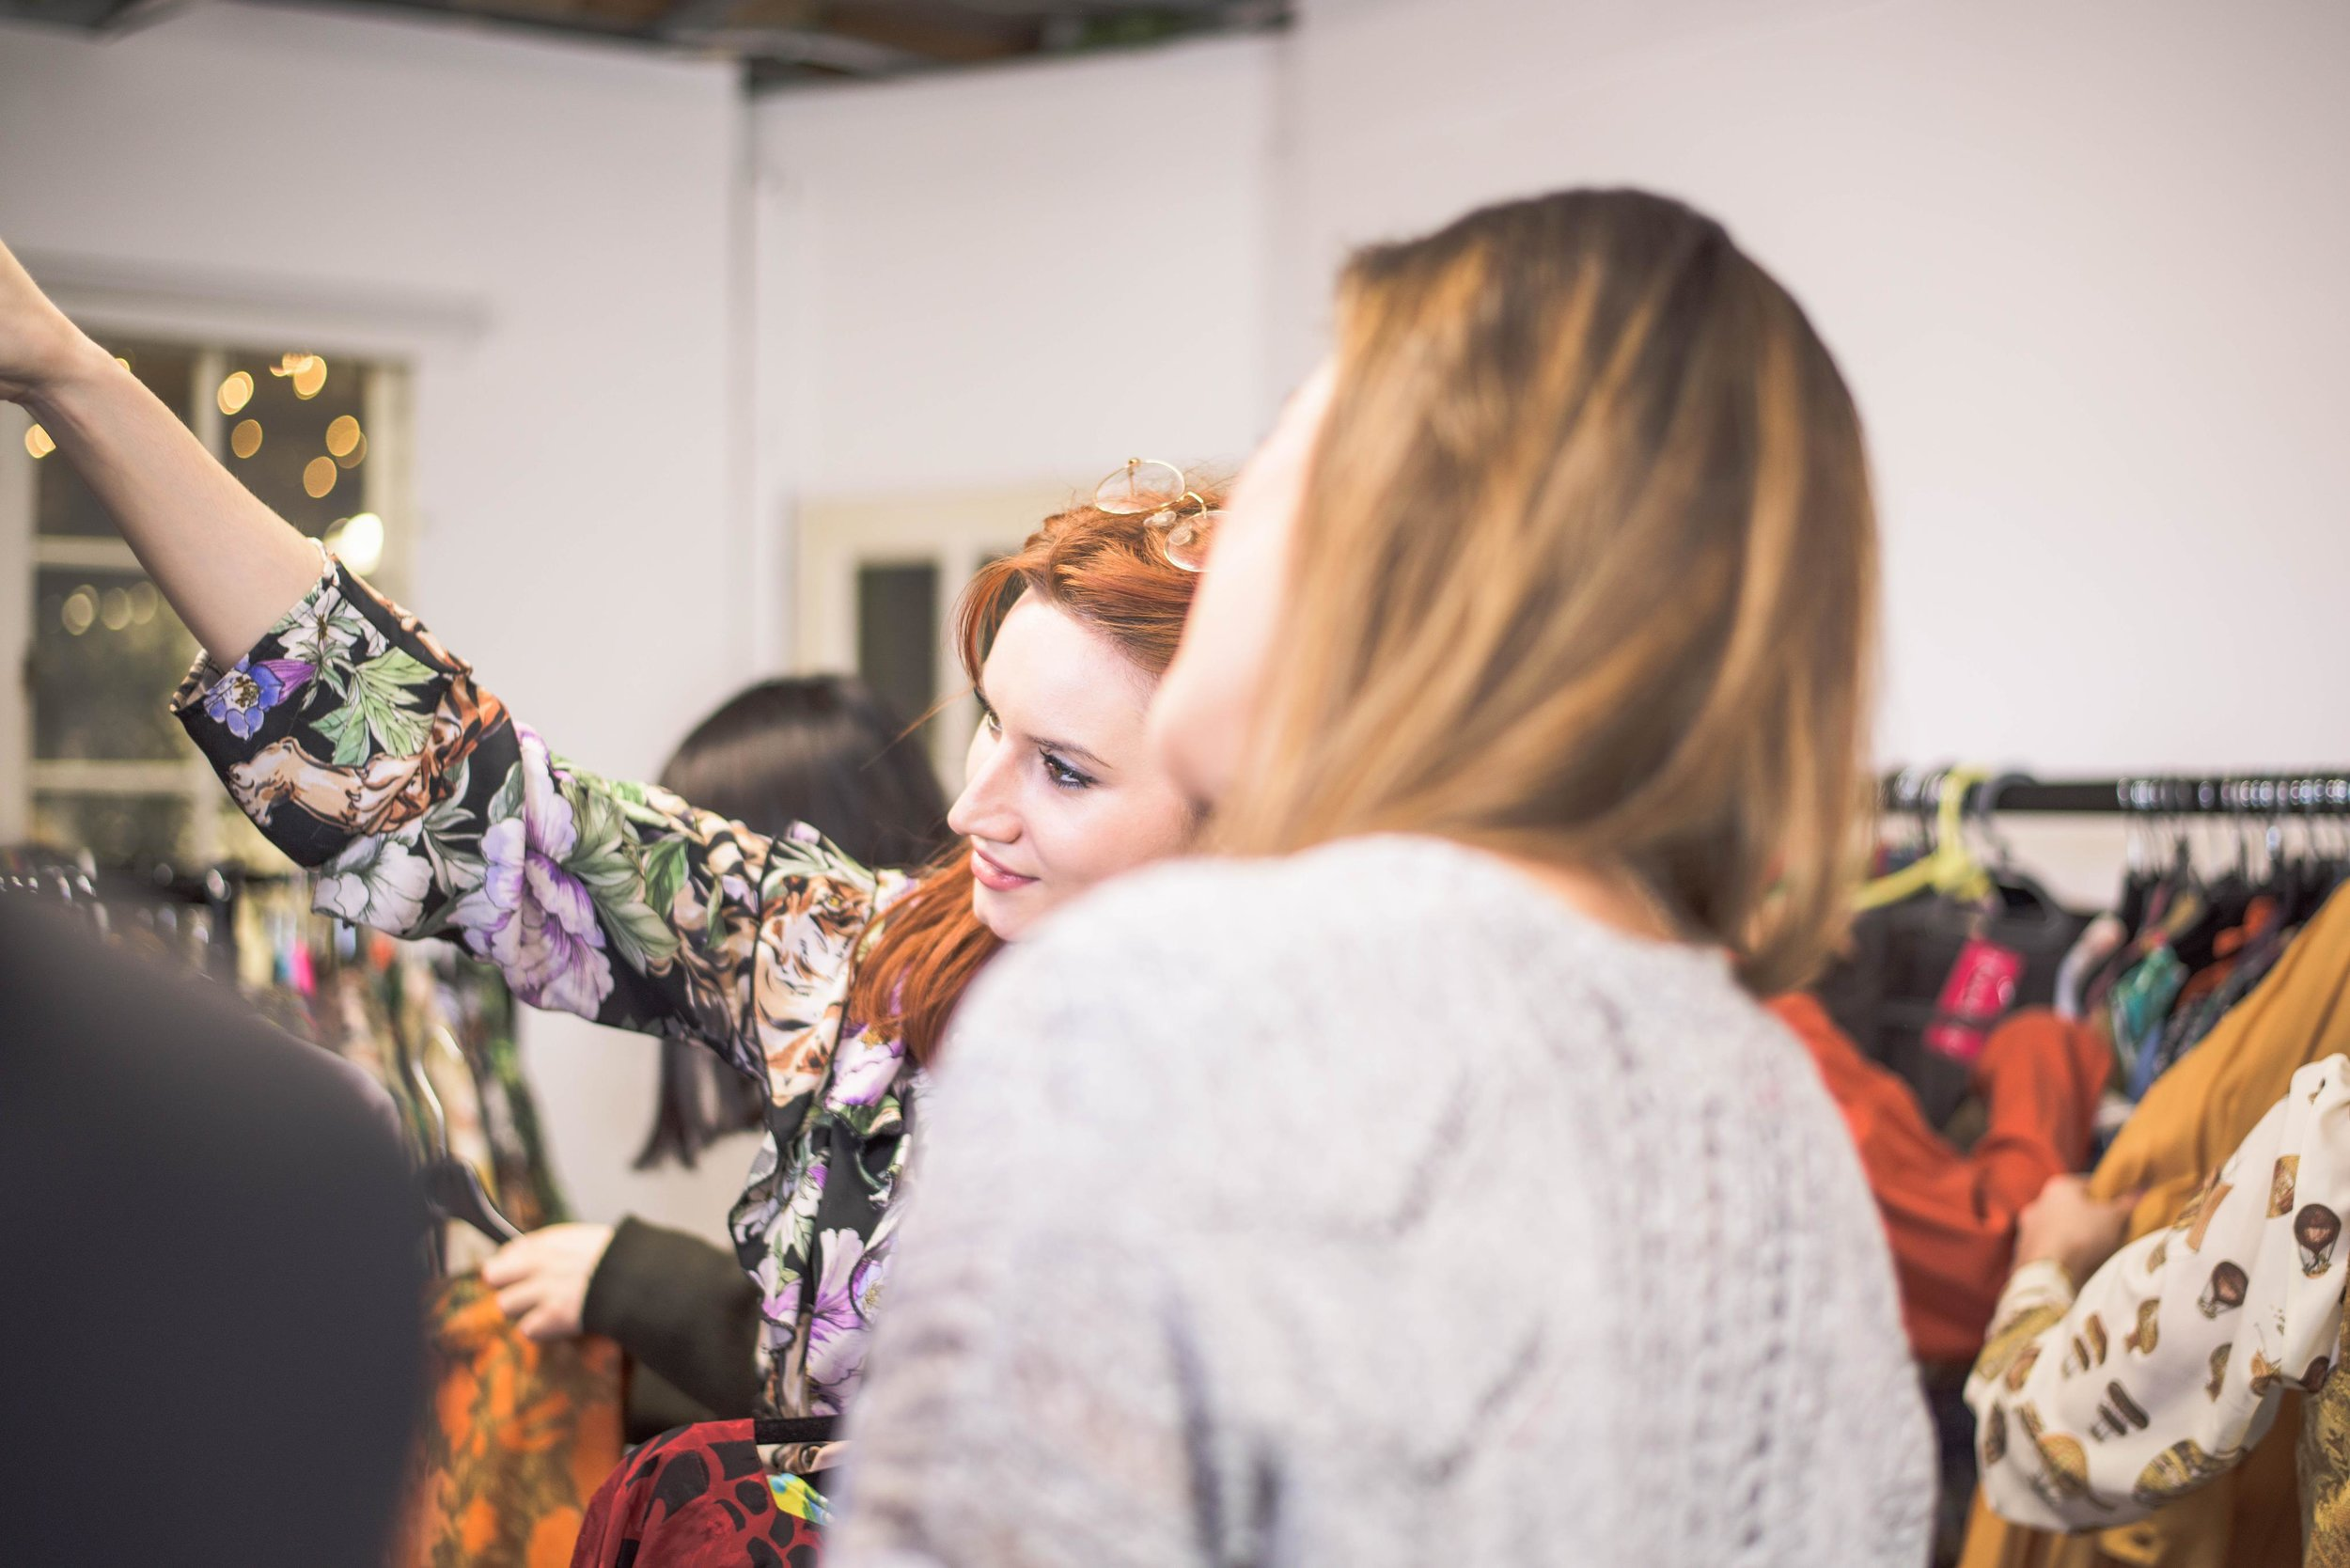 Louisa at the Trendlistr Studio styling some clients. Photo by  Marion Botella.